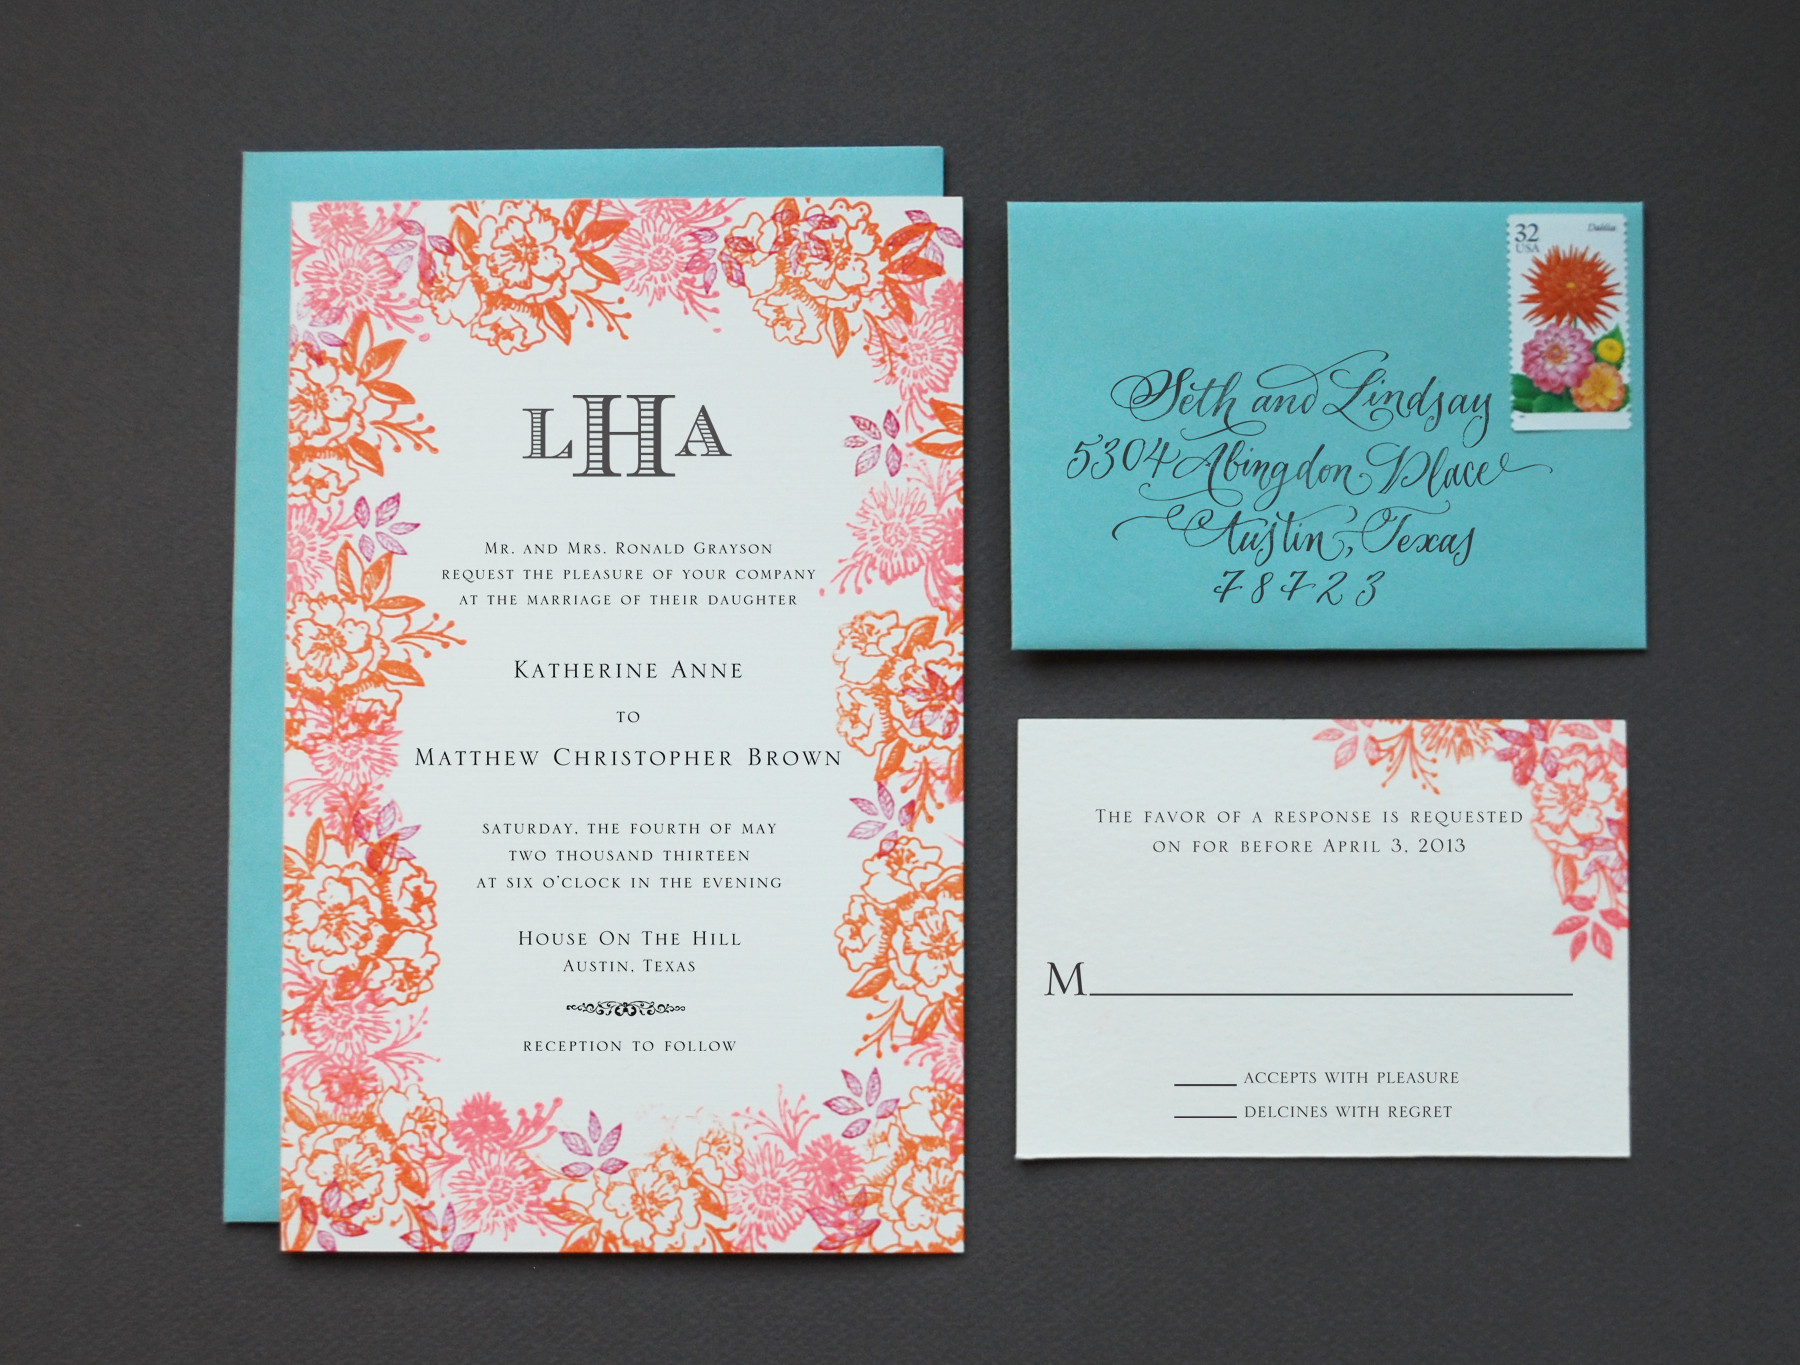 Best ideas about DIY Wedding Invites . Save or Pin DIY Rubber Stamp Floral Wedding Invitations Now.